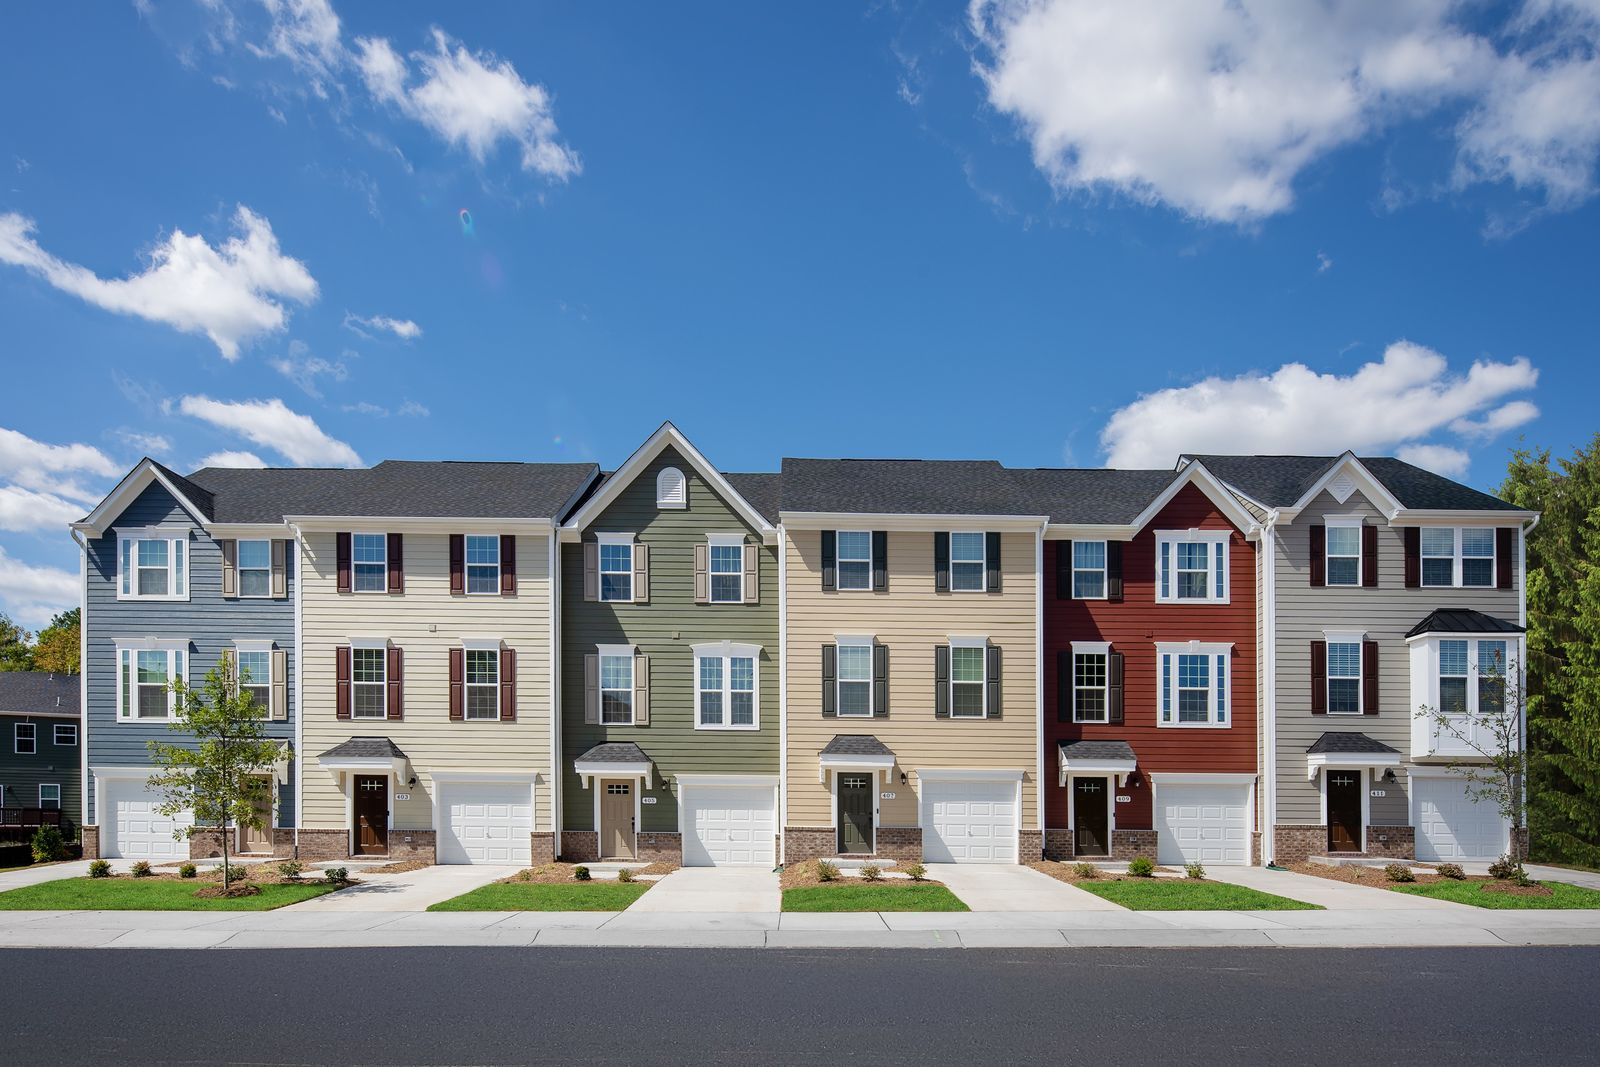 Welcome to Independence Square:New townhomes with garage in Gloucester Township priced from themid $200s.Phase 1 is sold out.Click here to stay up to date on Phase 2 - coming in December.